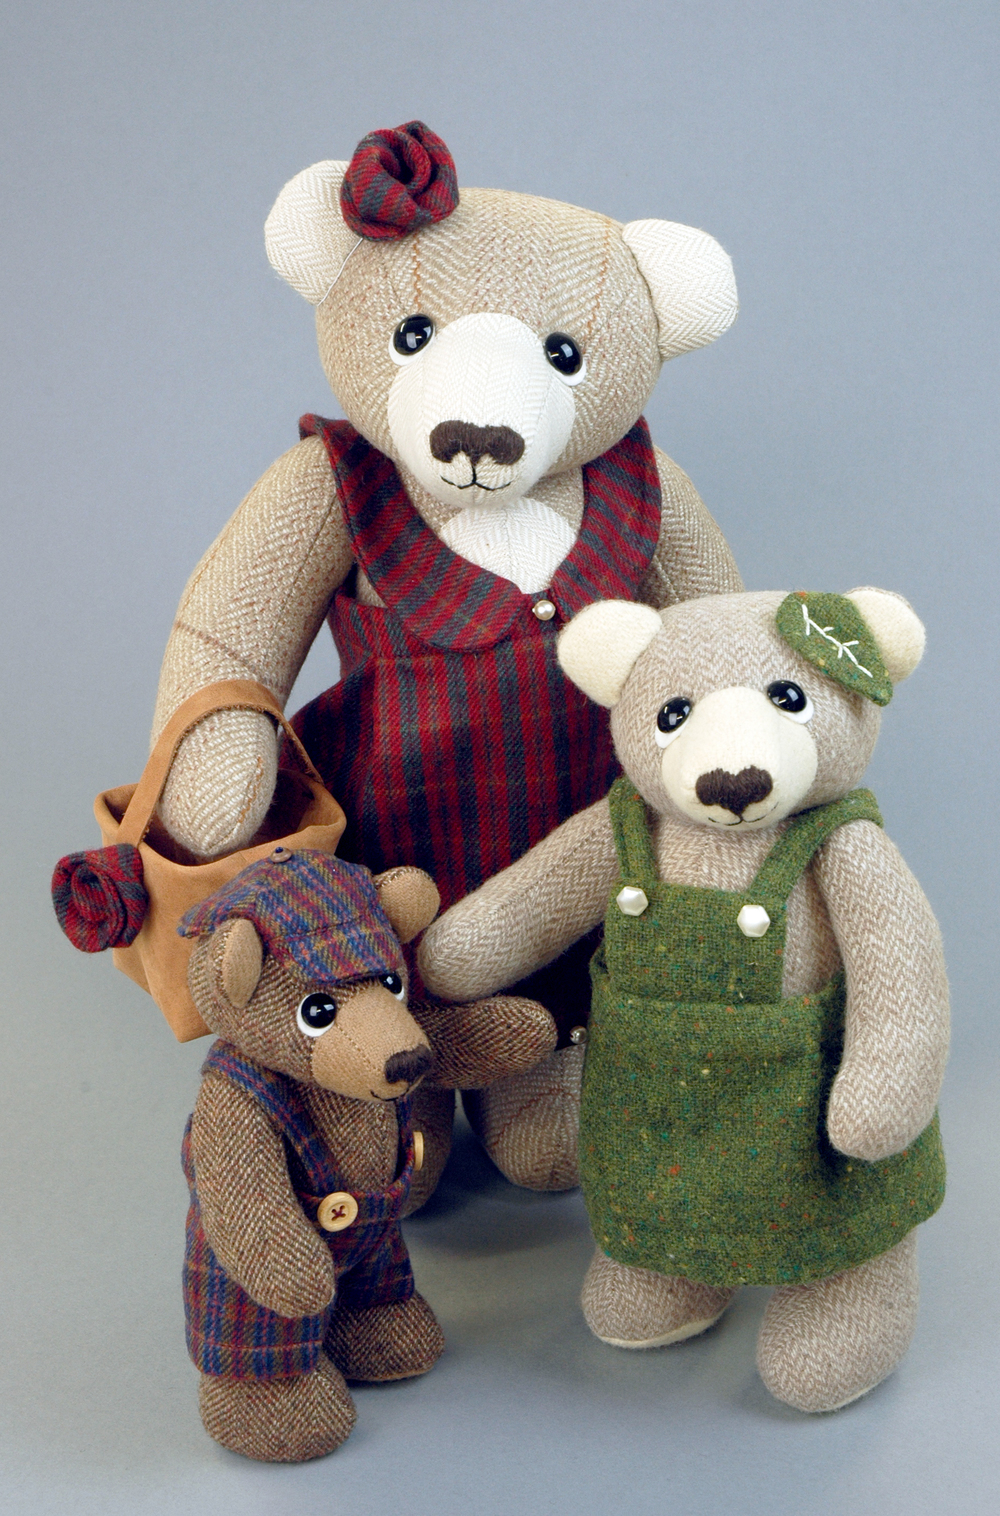 OOAK artist bears by Laura Mirjami.